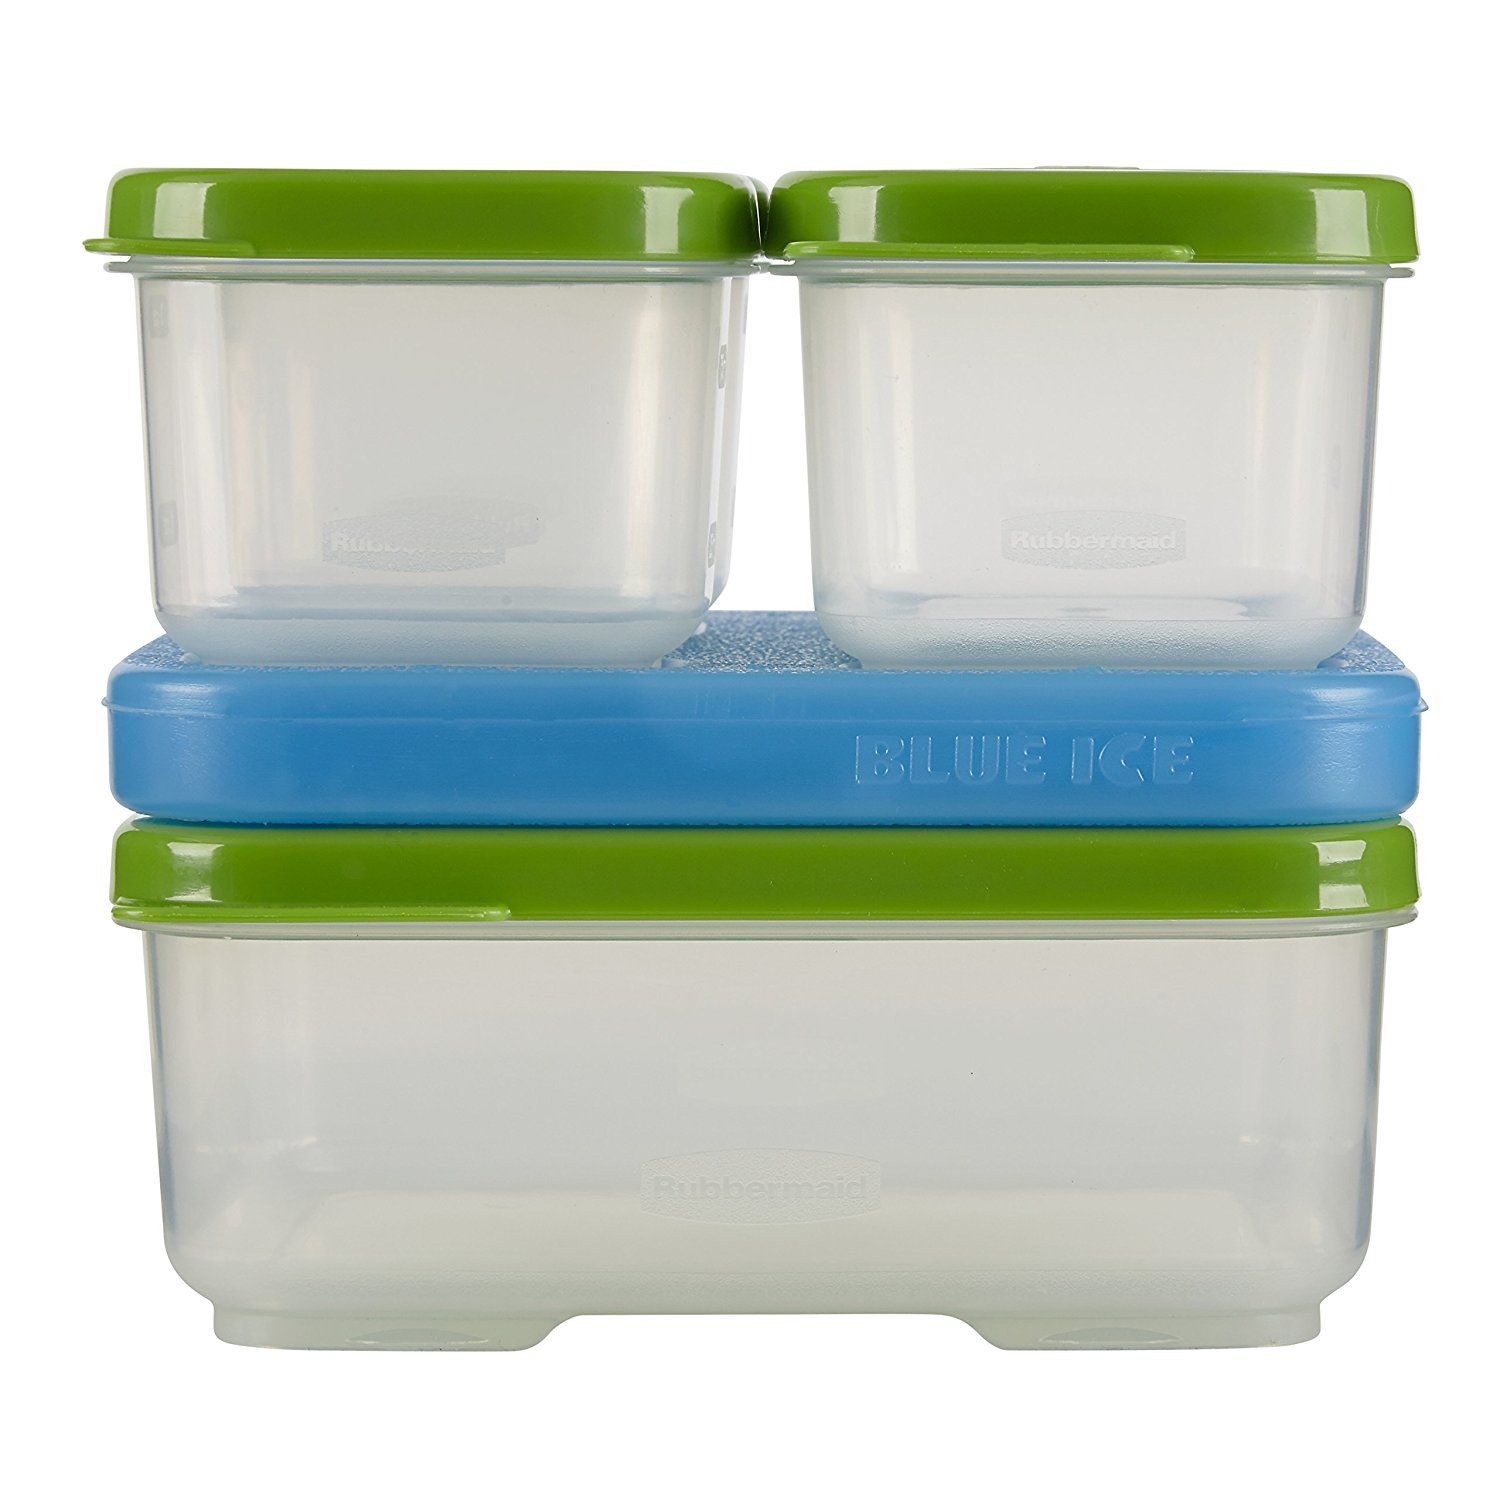 Amazoncom Rubbermaid LunchBox Sandwich Kit Food Storage Container